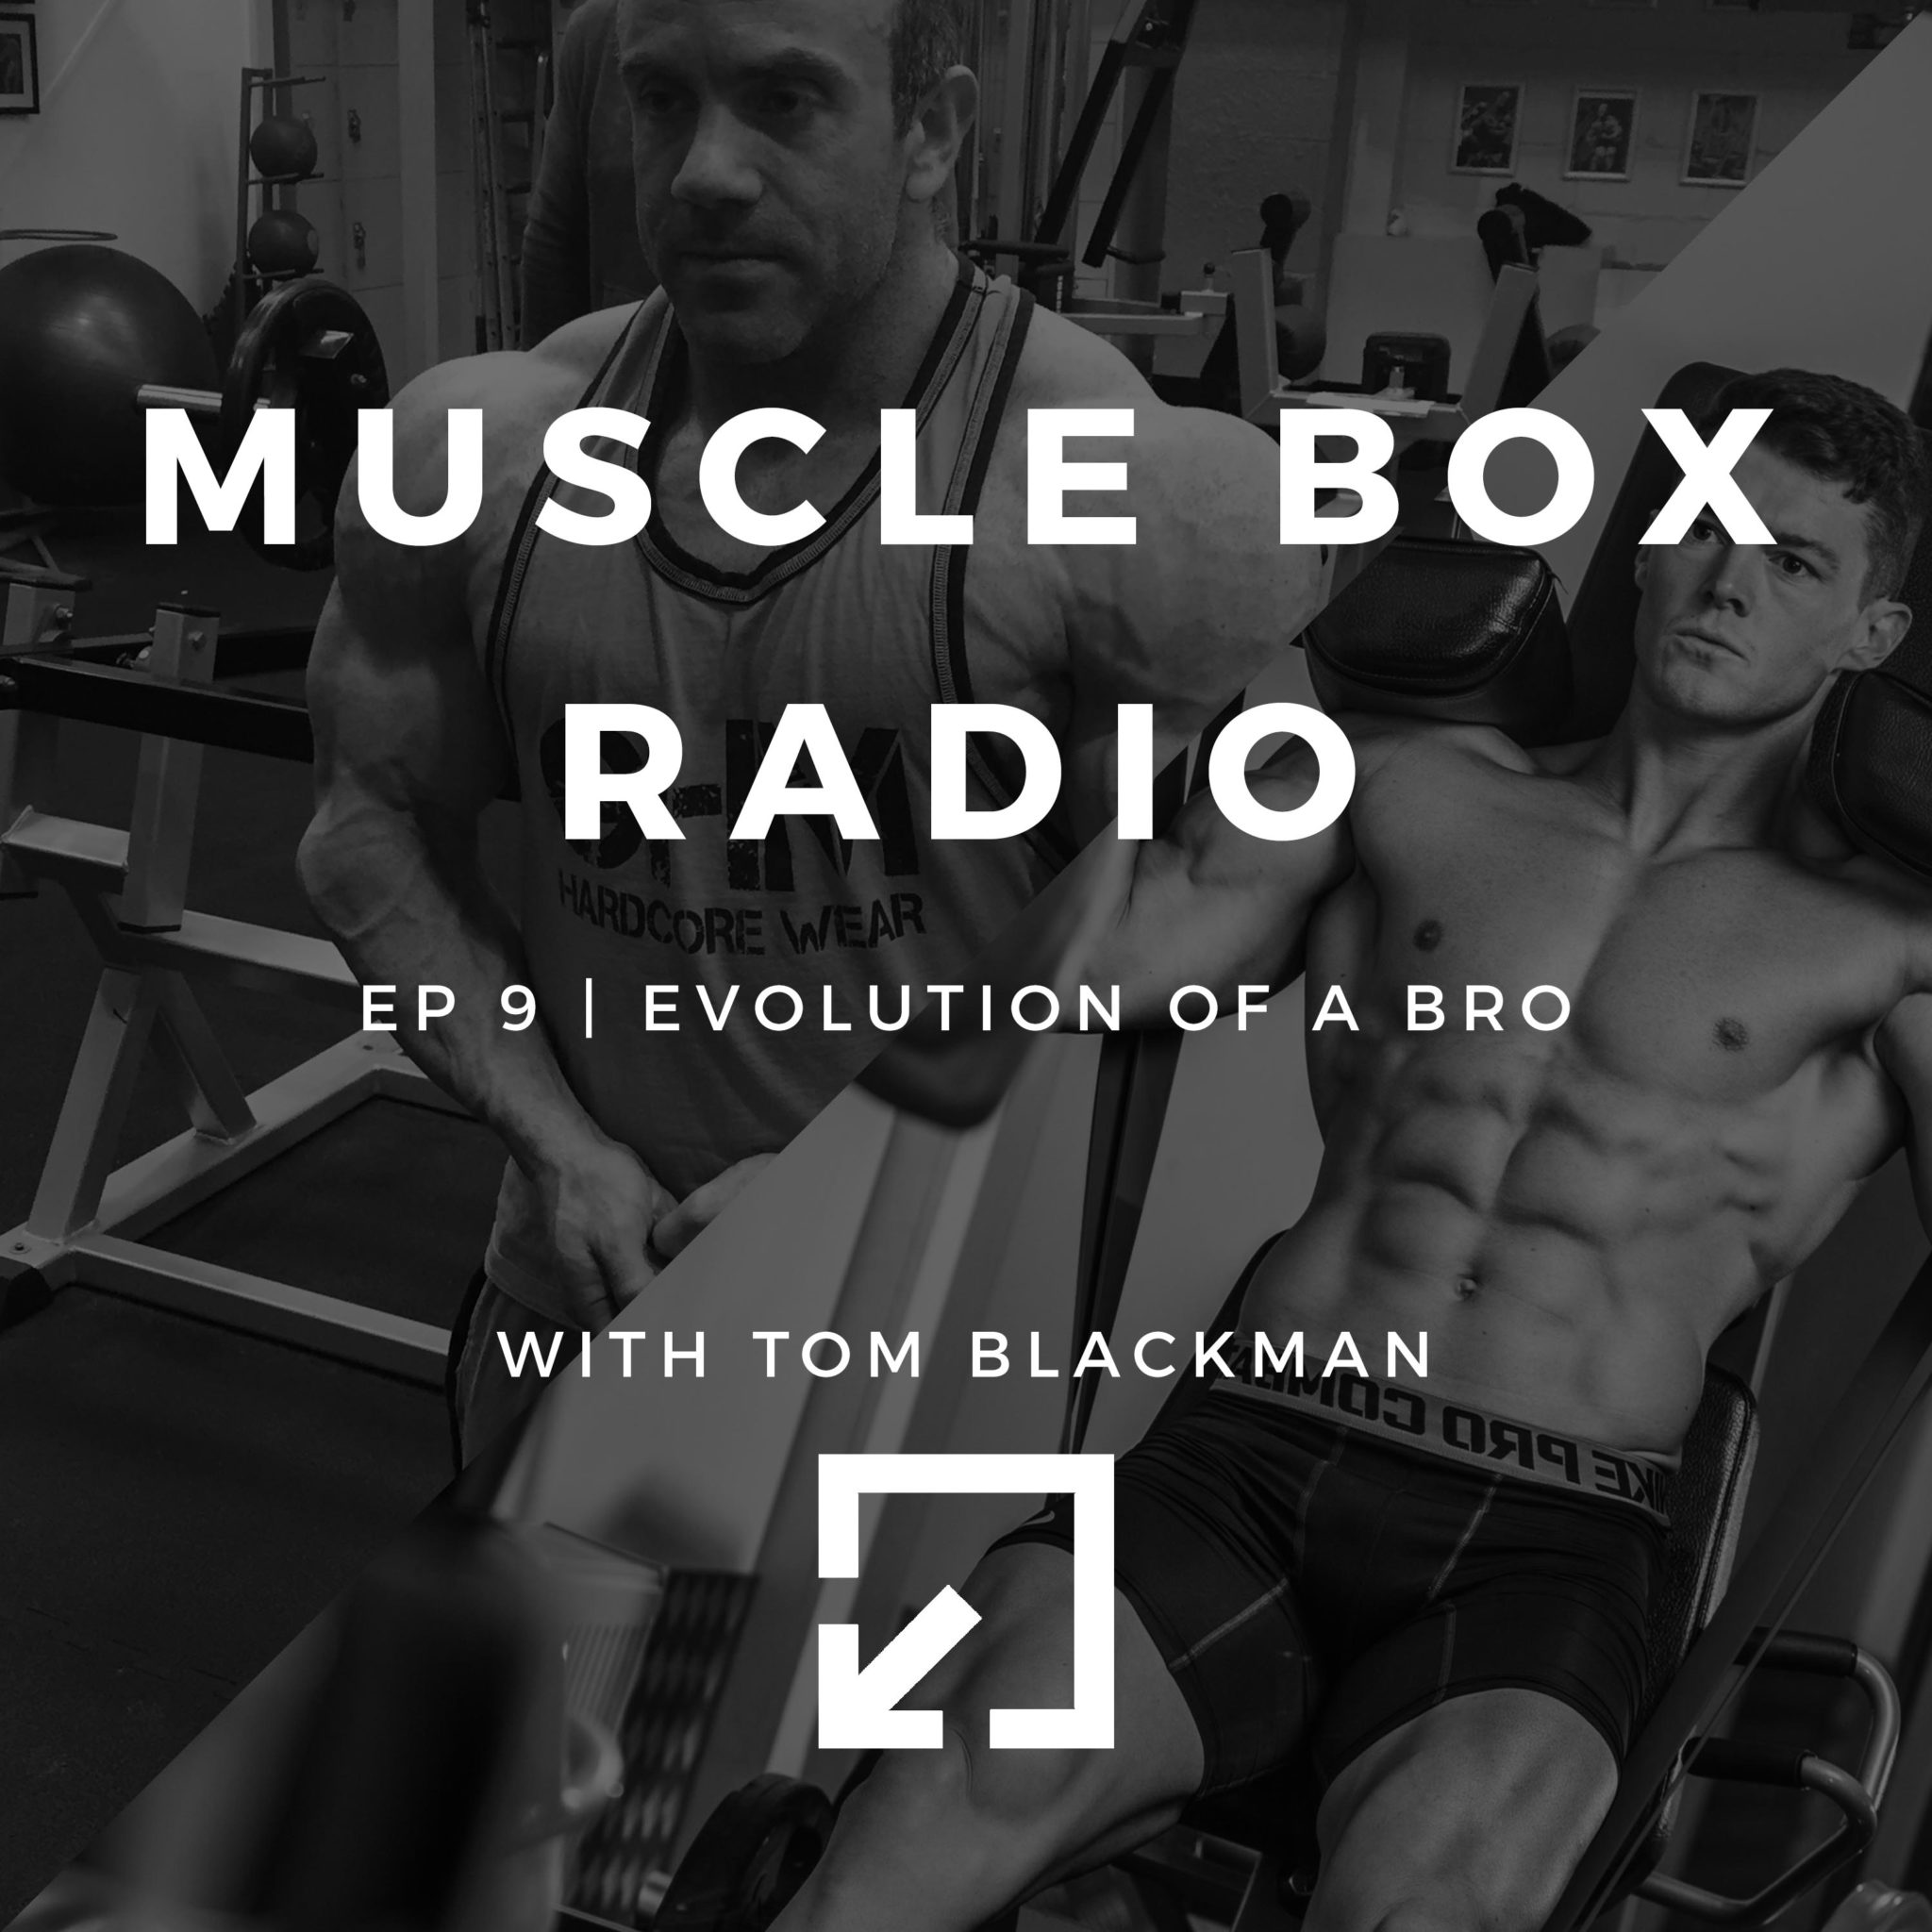 EP 9 With Tom Blackman